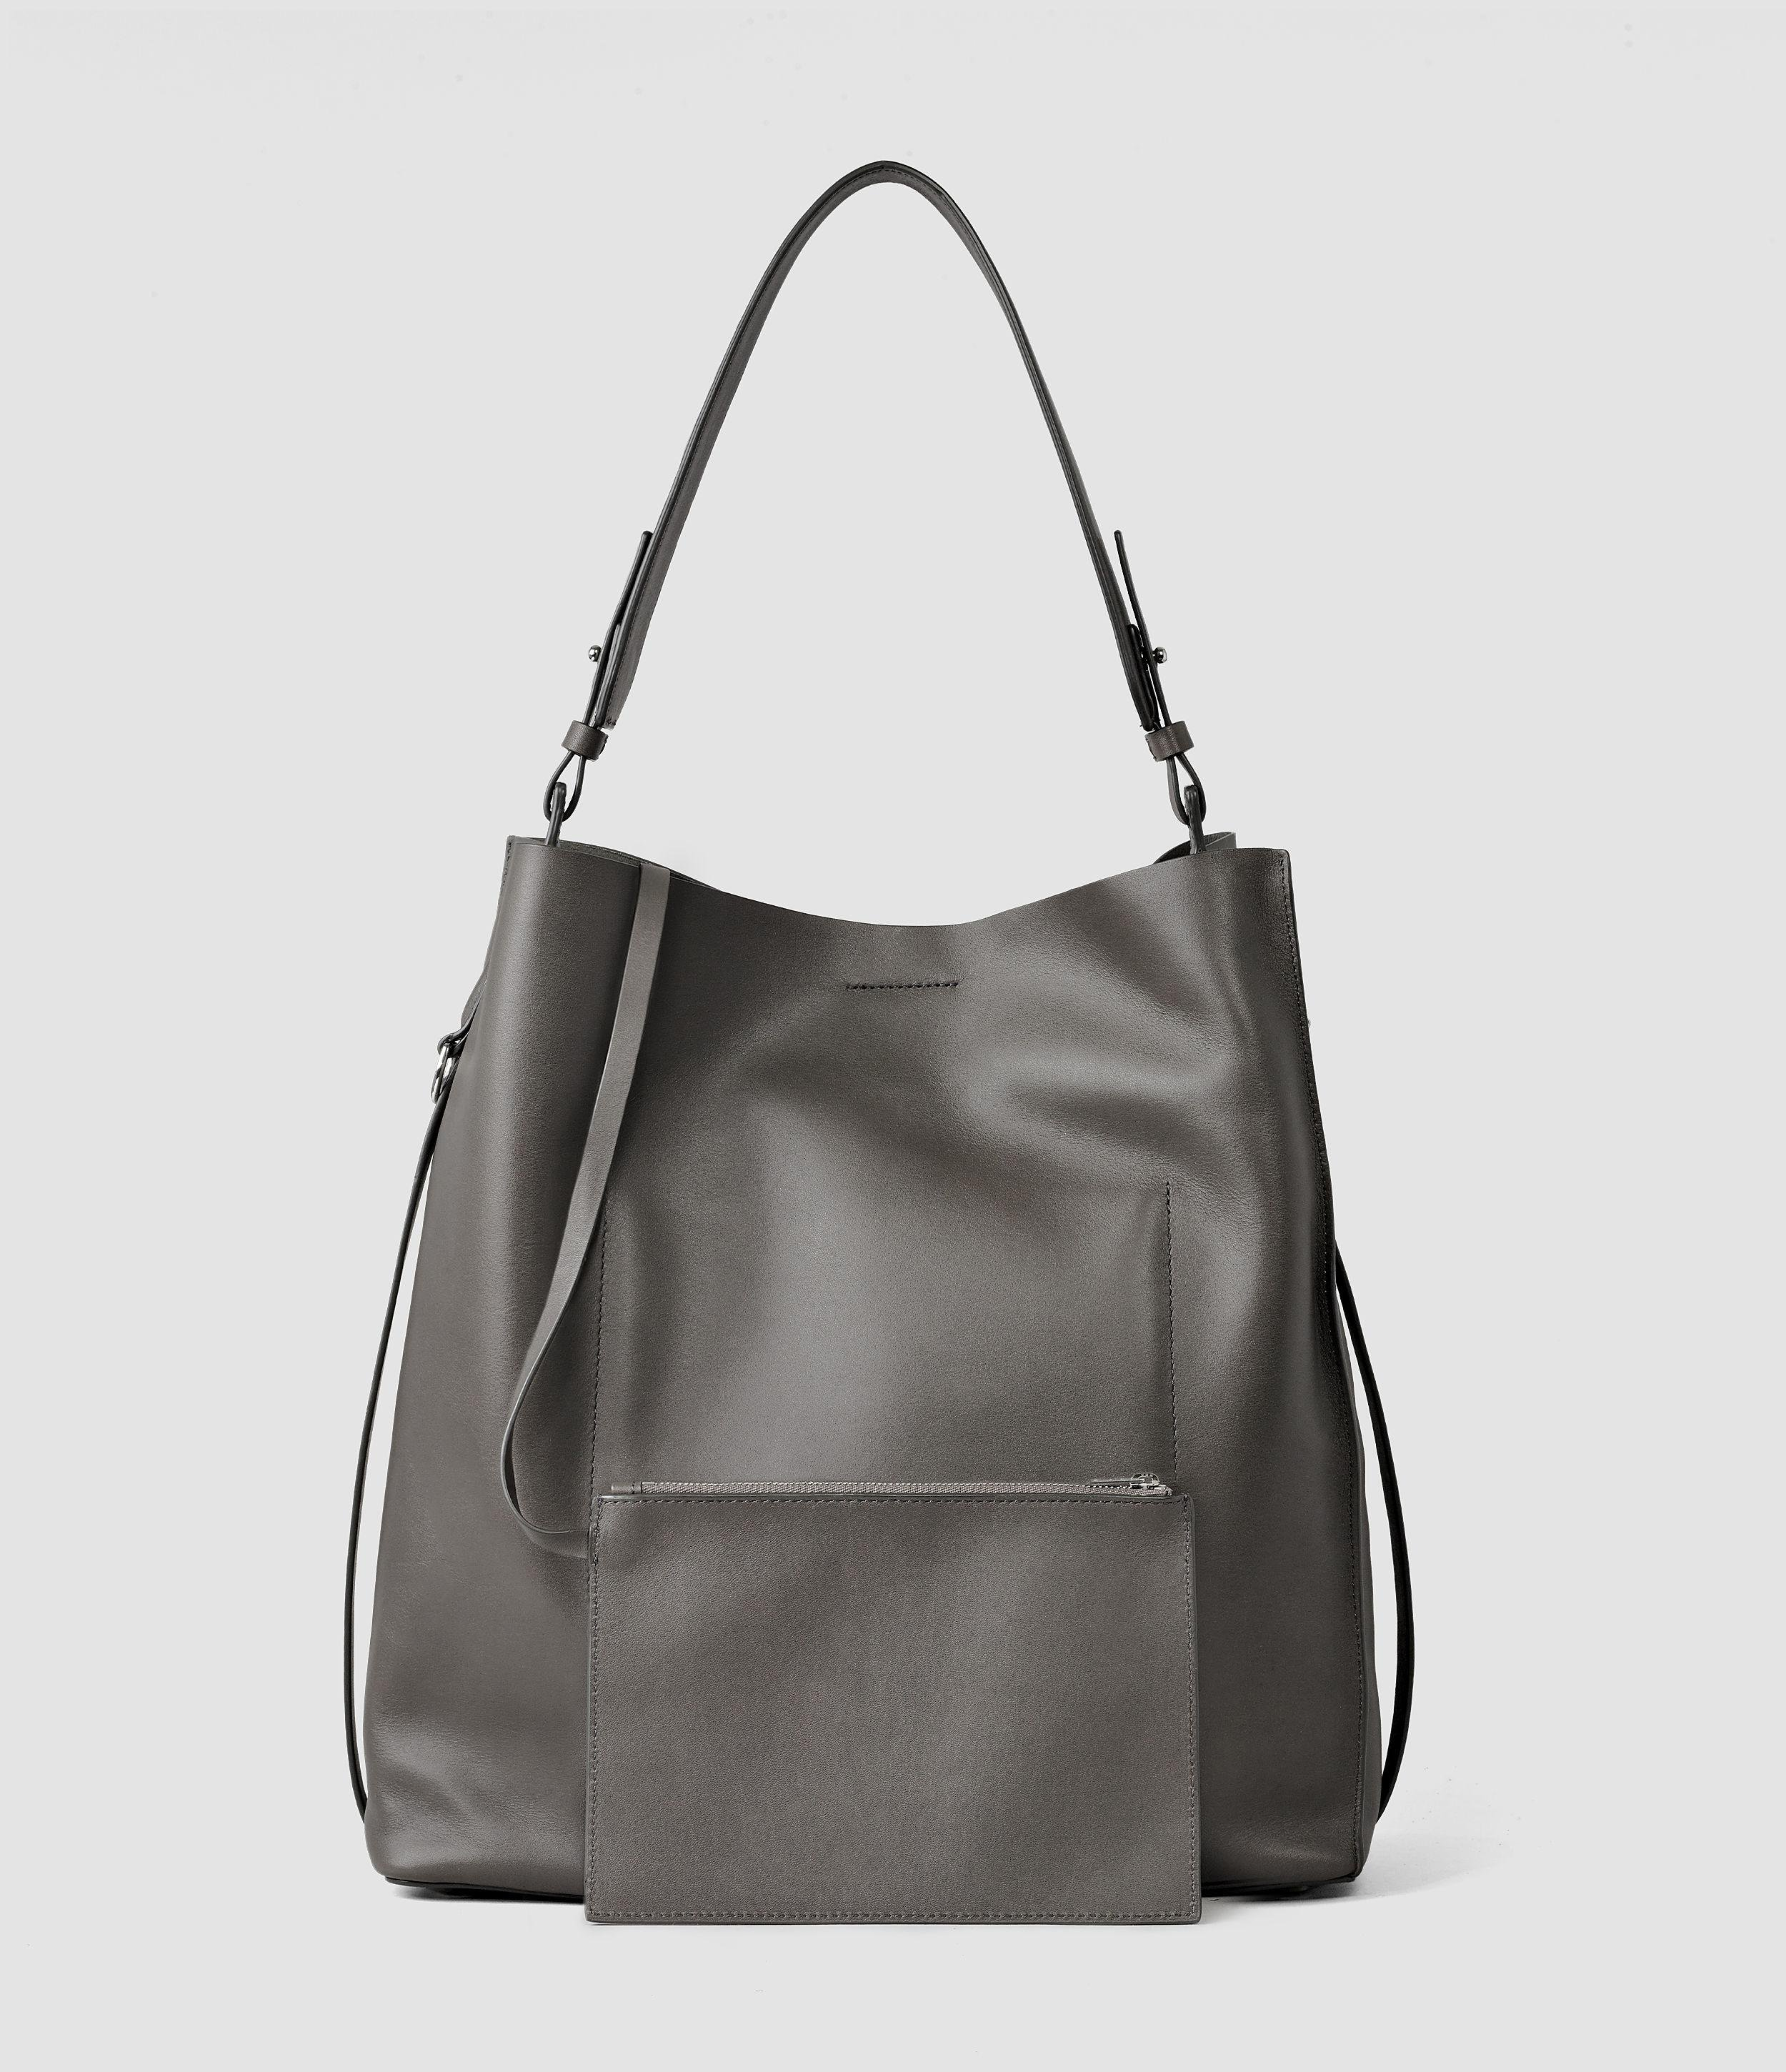 AllSaints Leather Paradise North South Tote in Dark Grey (Grey)